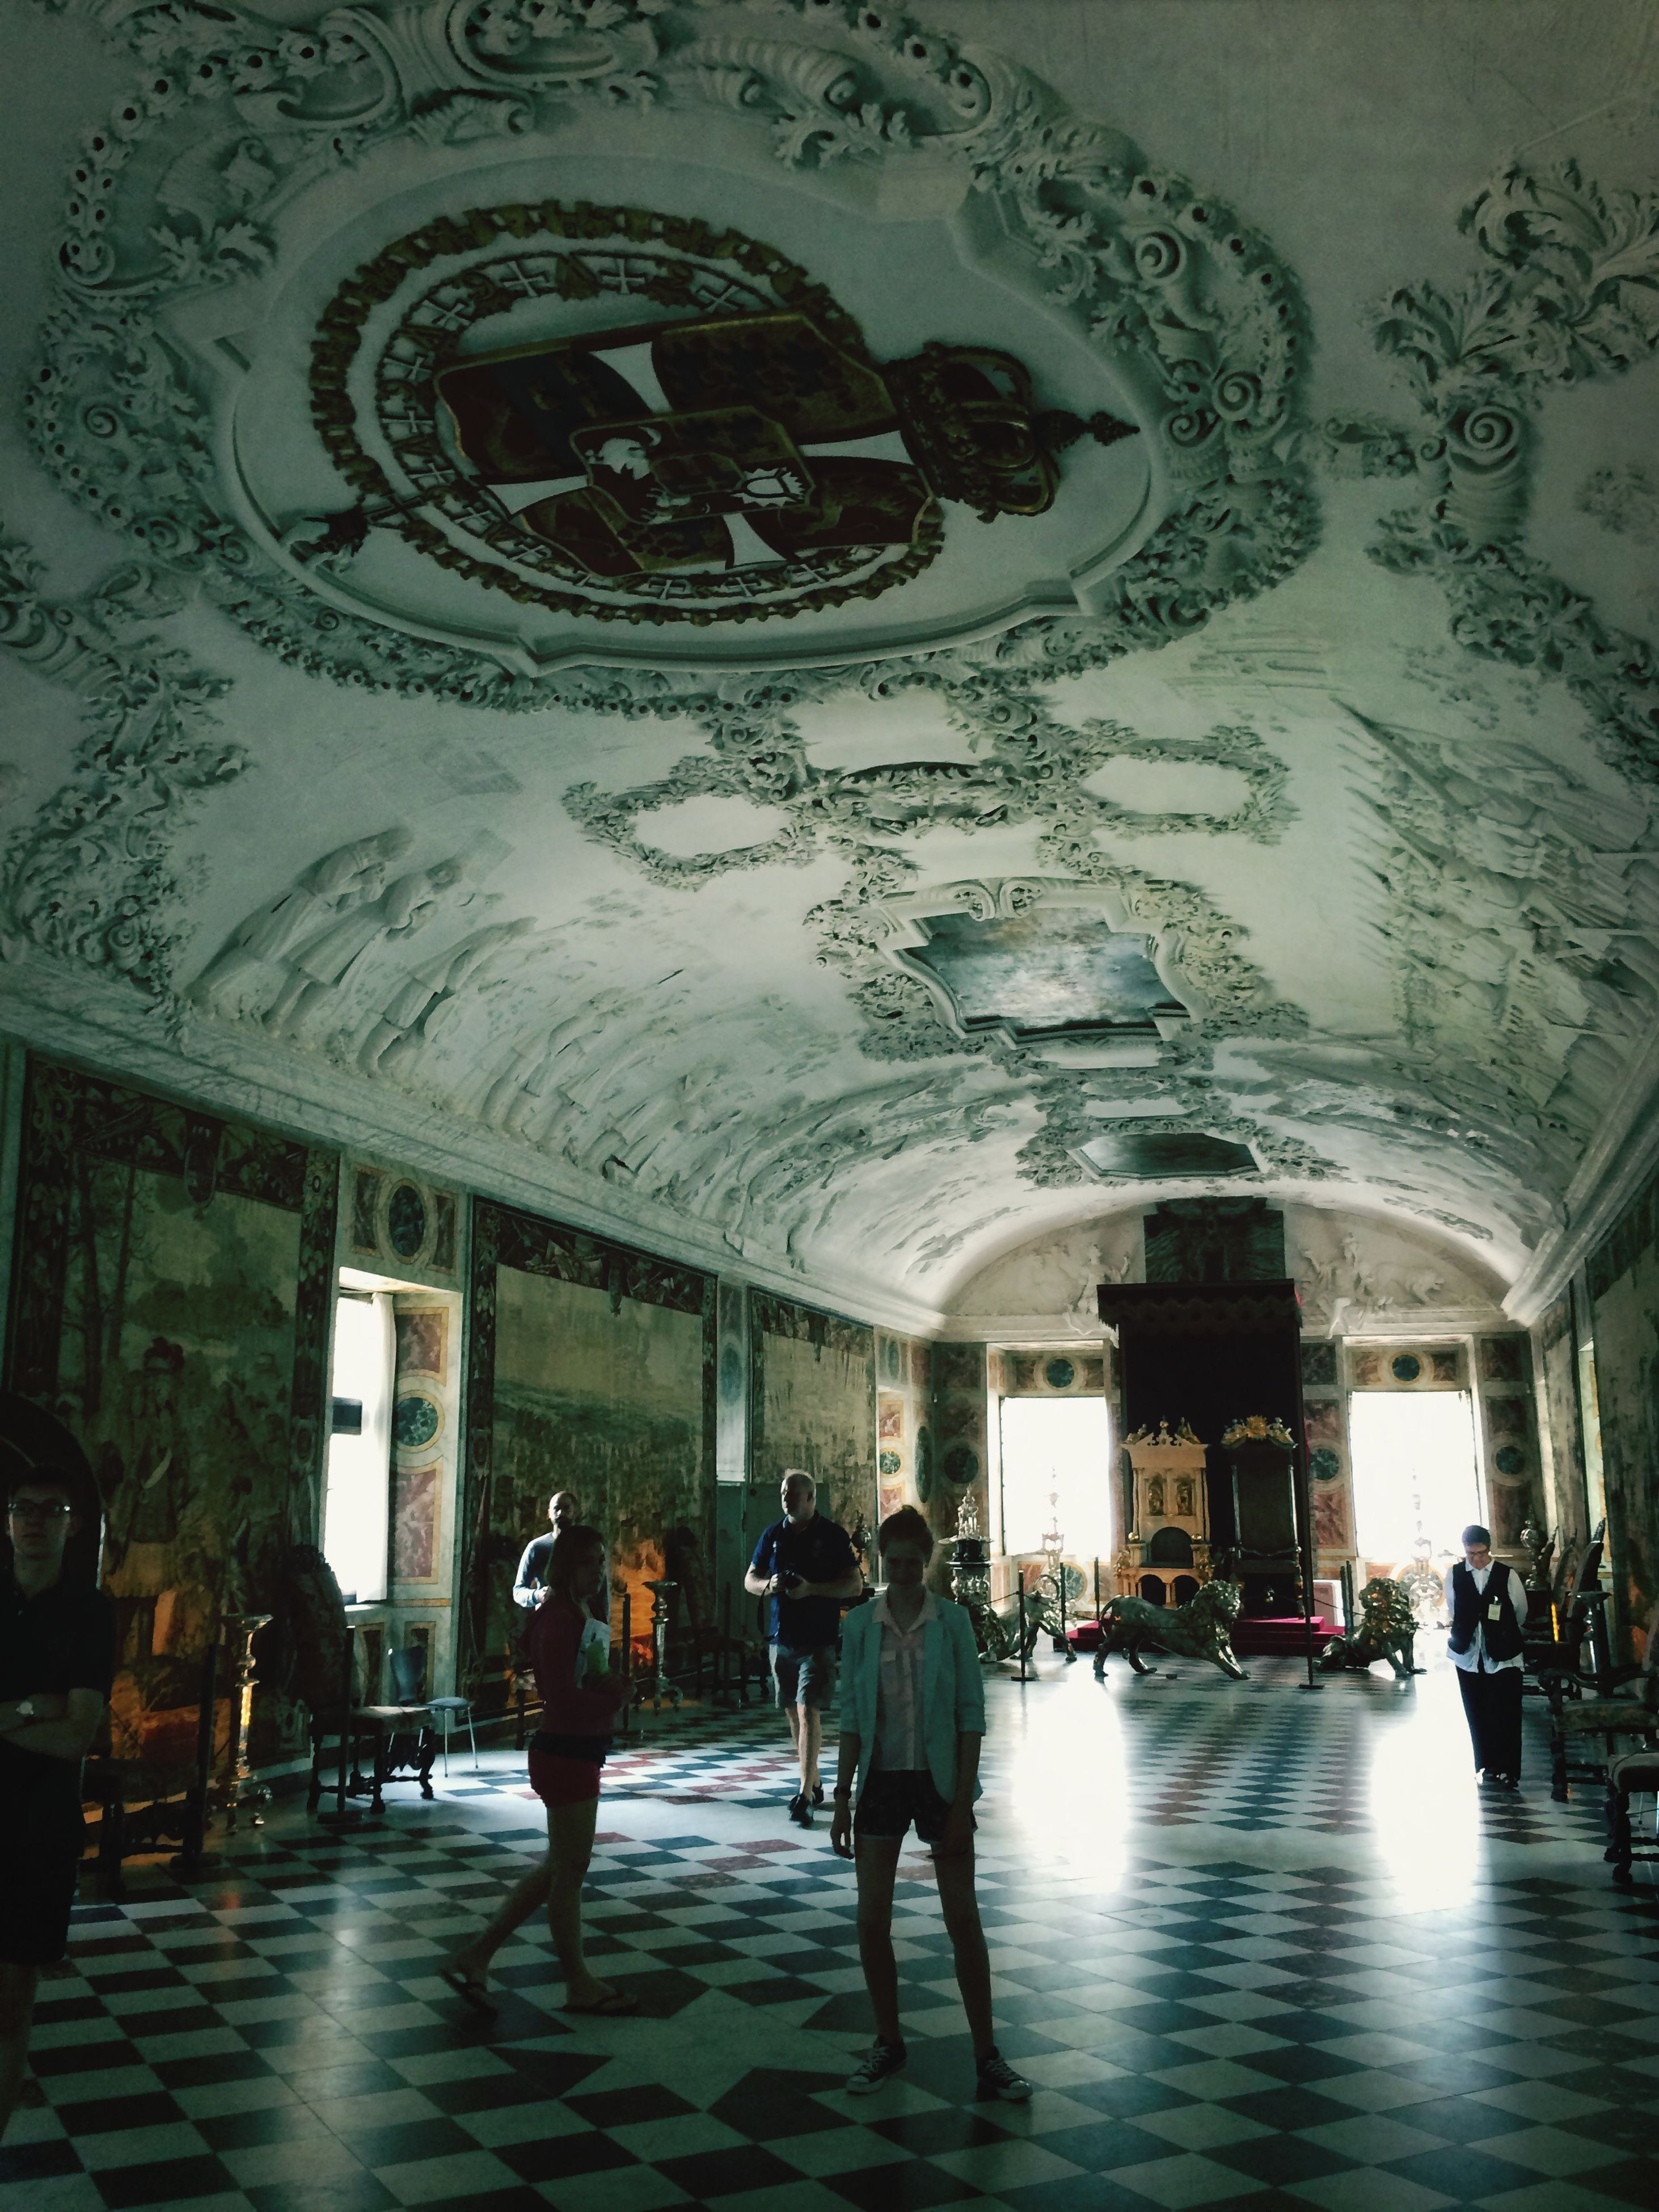 indoors, architecture, built structure, ceiling, men, lifestyles, person, walking, large group of people, illuminated, leisure activity, arch, city life, incidental people, railroad station, travel, lighting equipment, medium group of people, full length